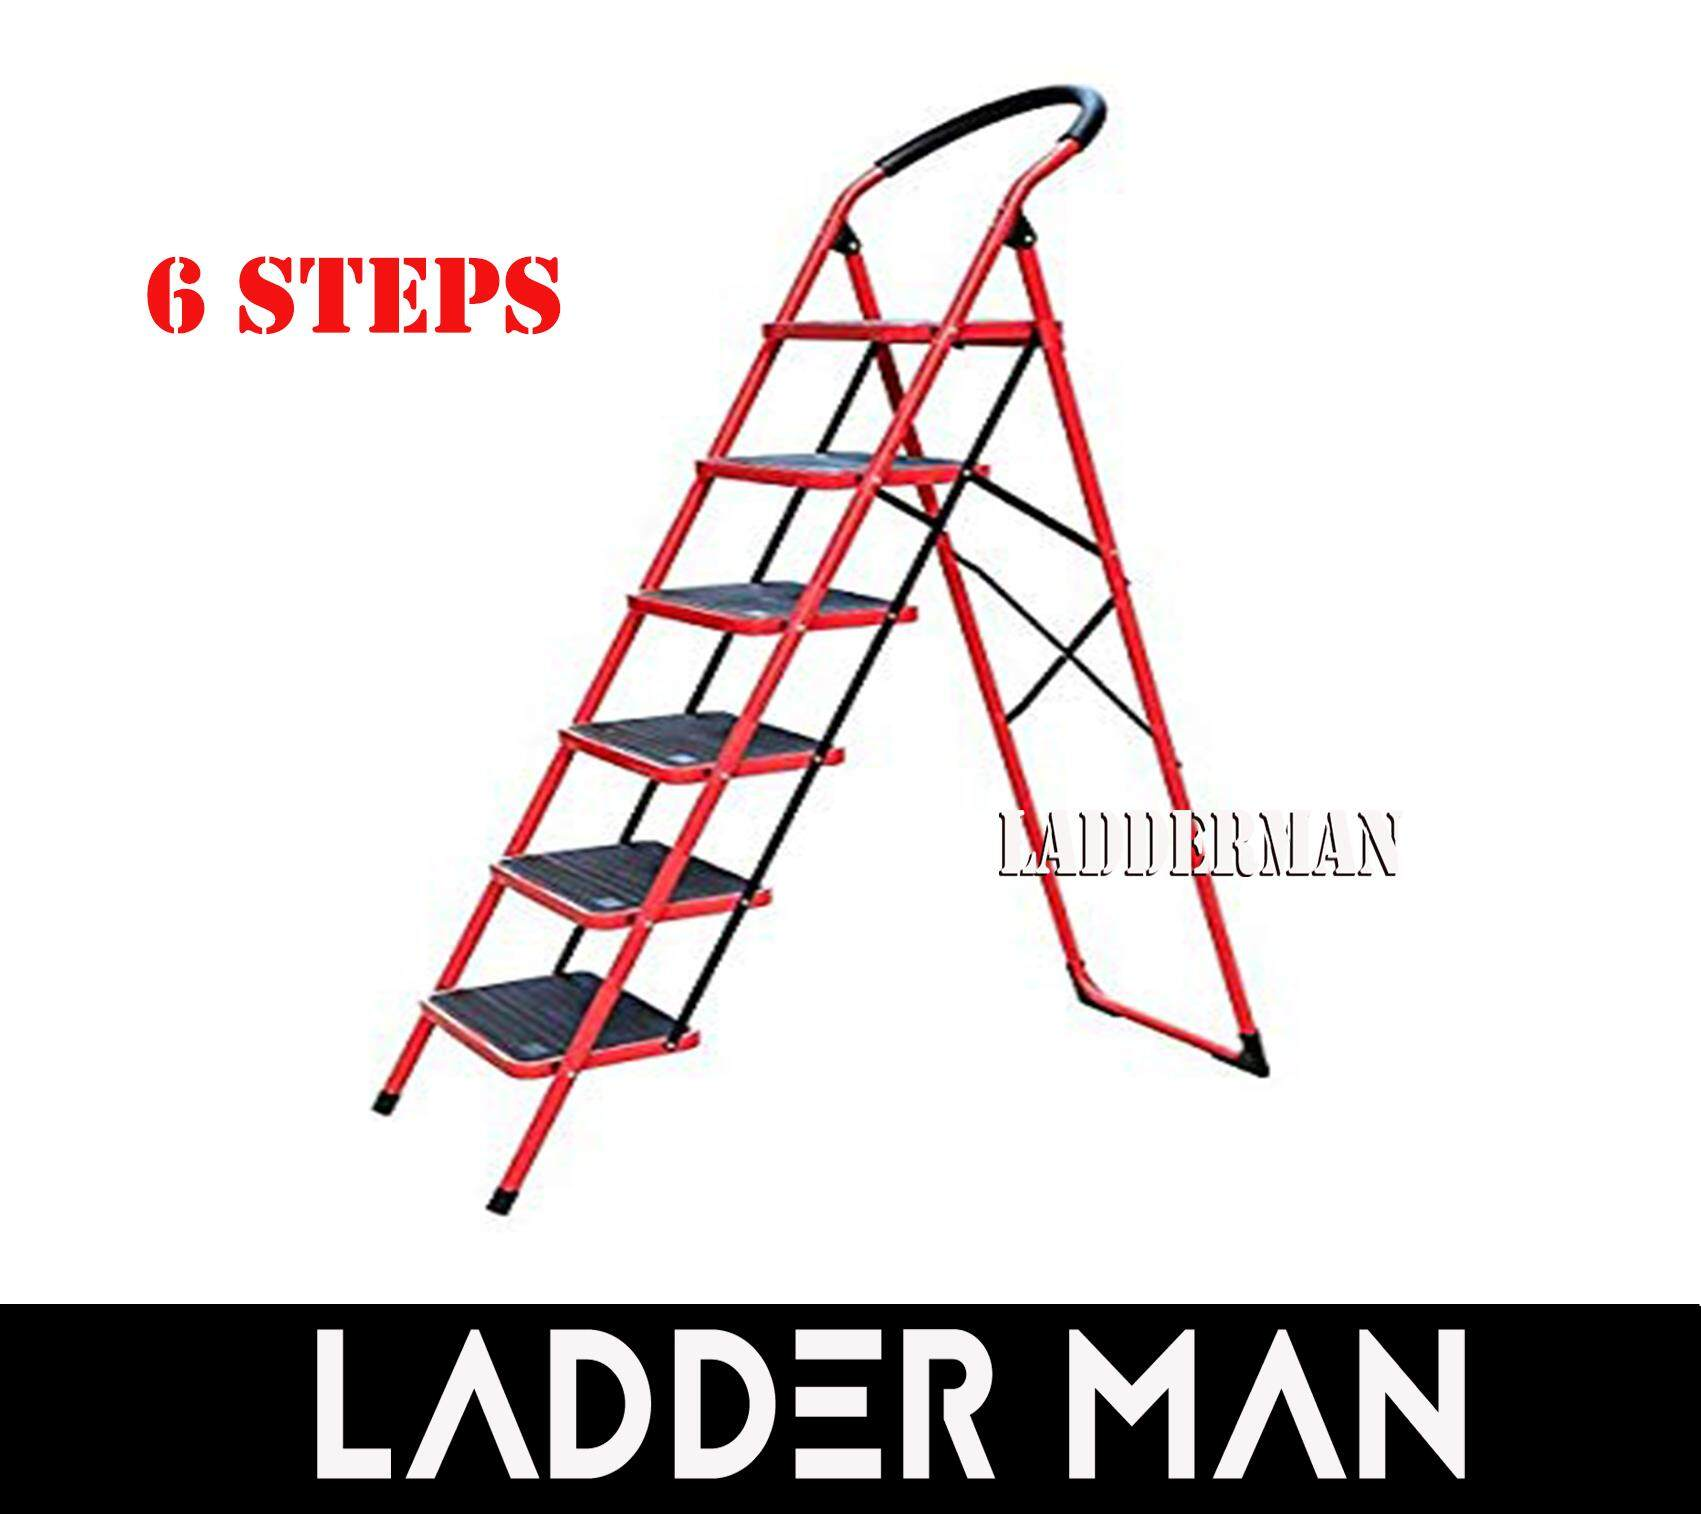 Heavy Duty Foldable 6 Step Stool Ladder with Hand Grip